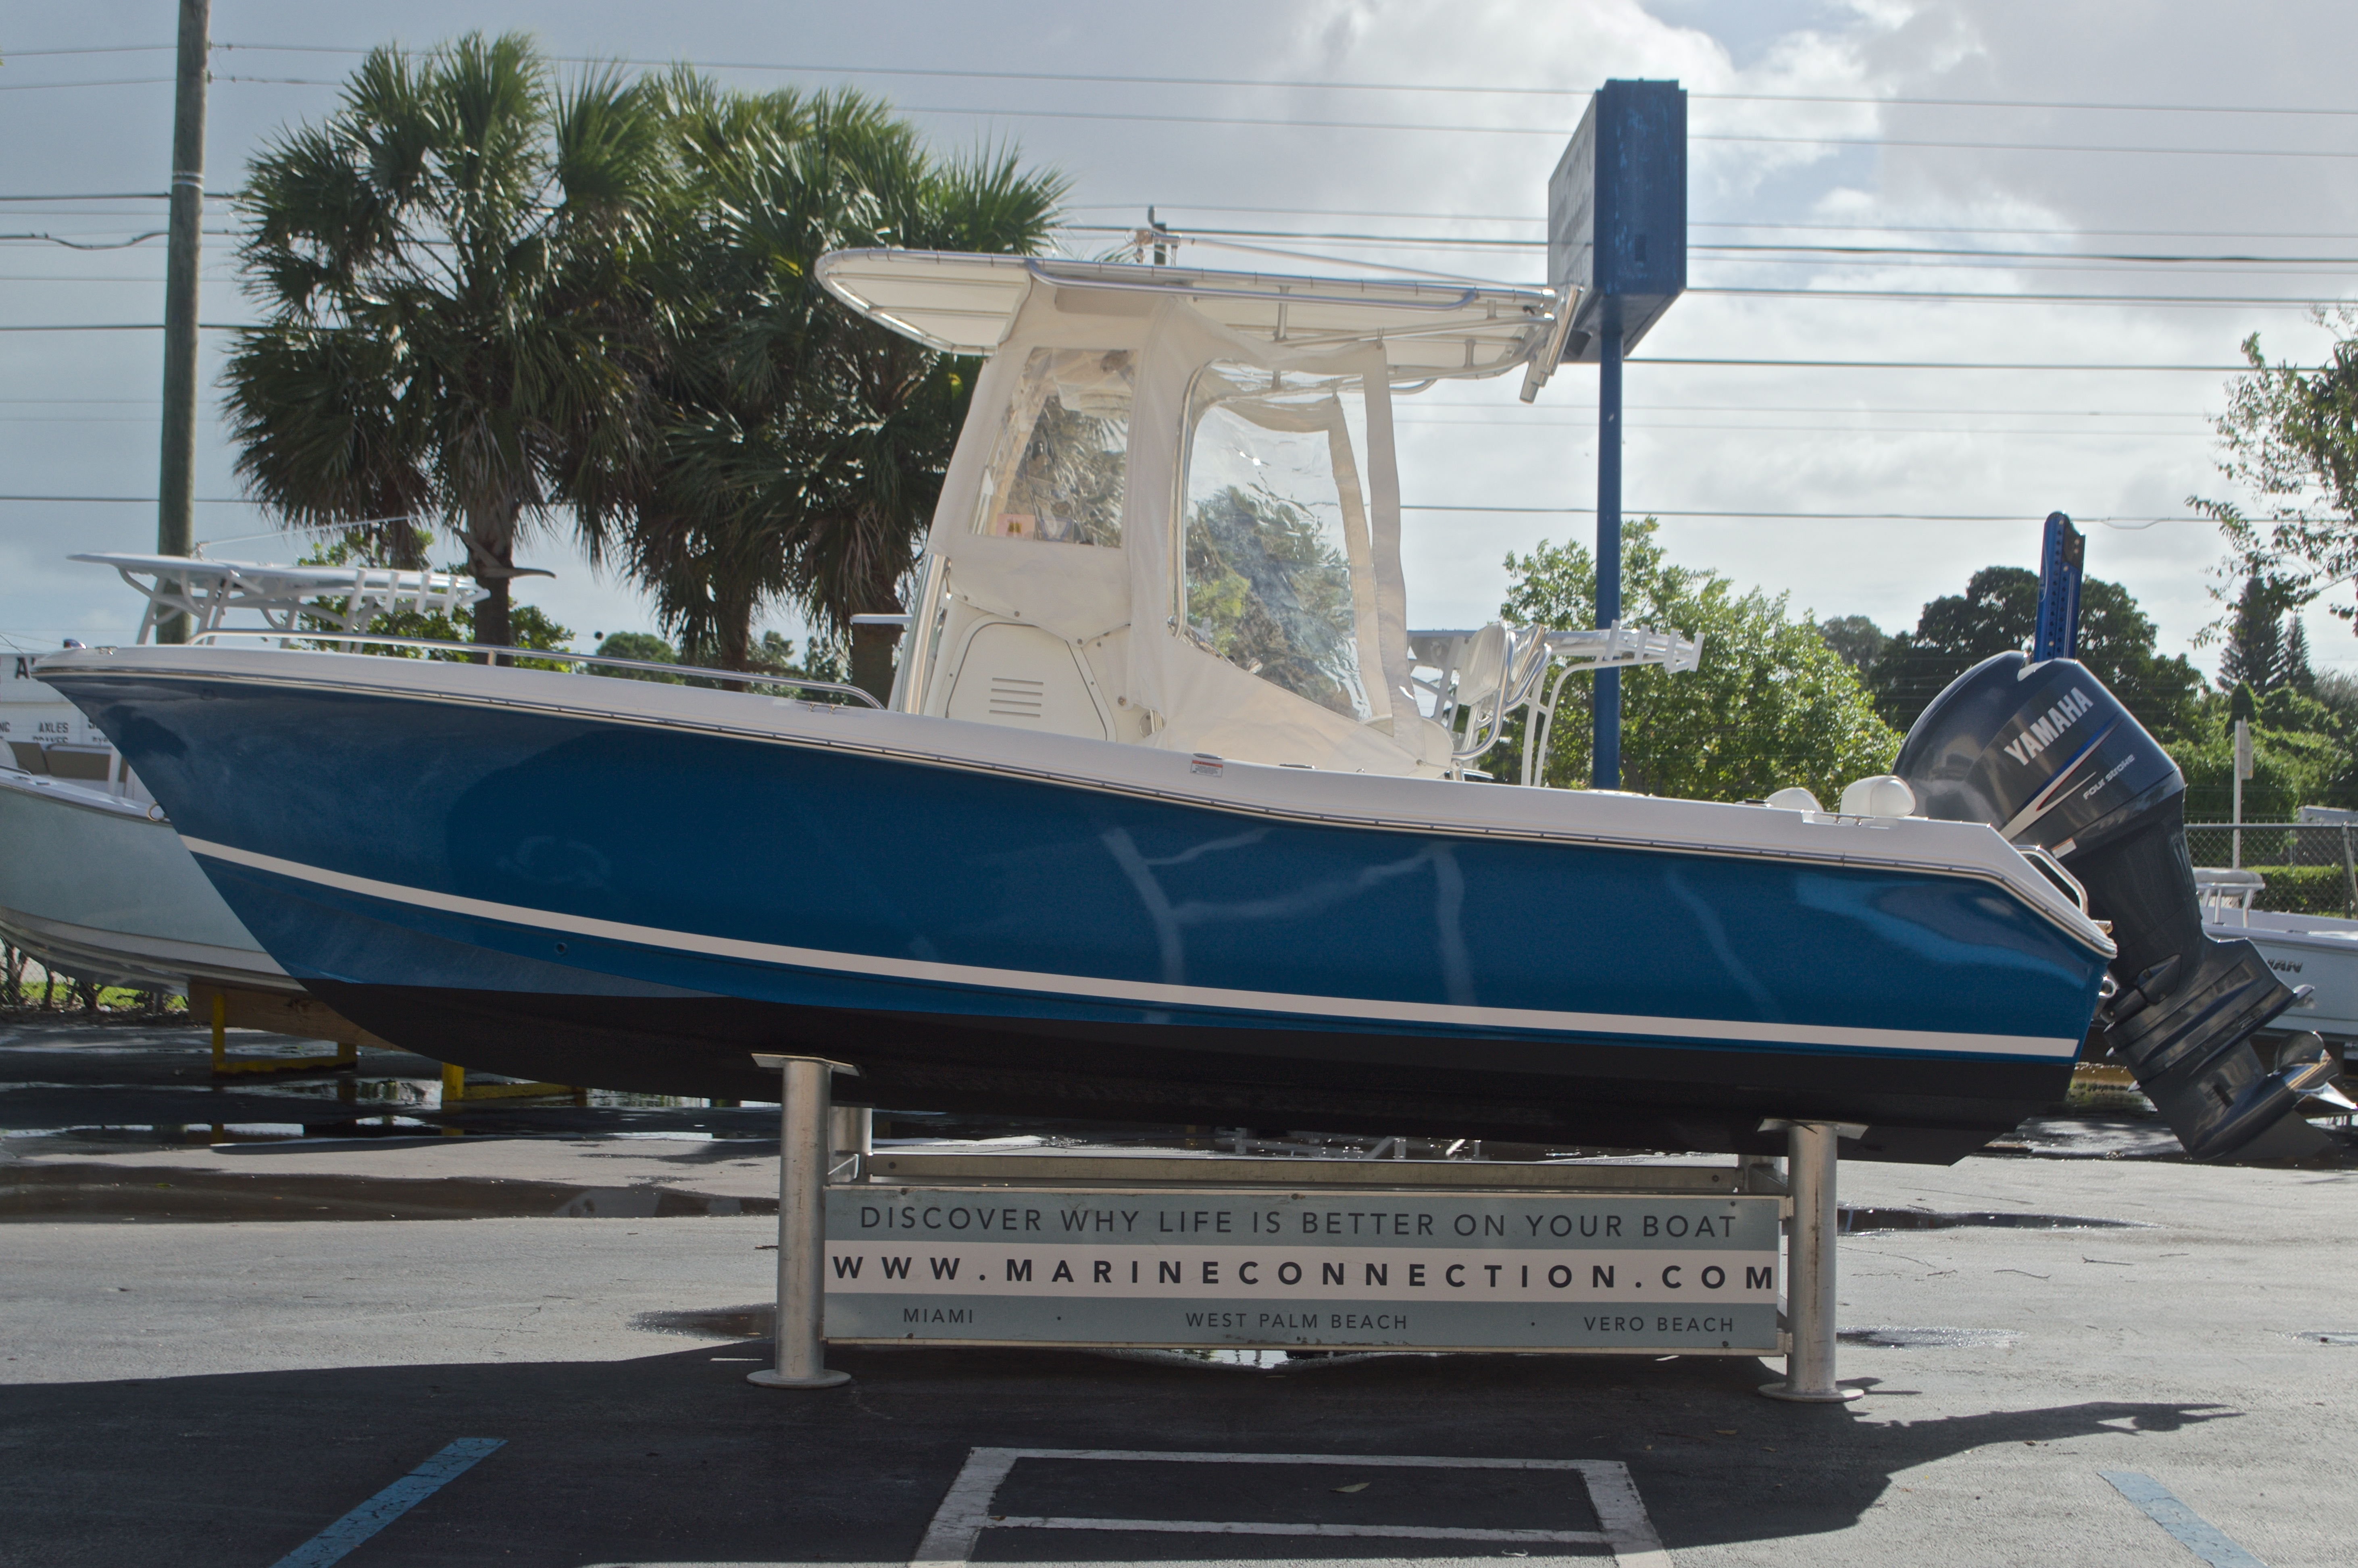 Thumbnail 5 for Used 2009 Sea Hunt 207 Triton boat for sale in West Palm Beach, FL